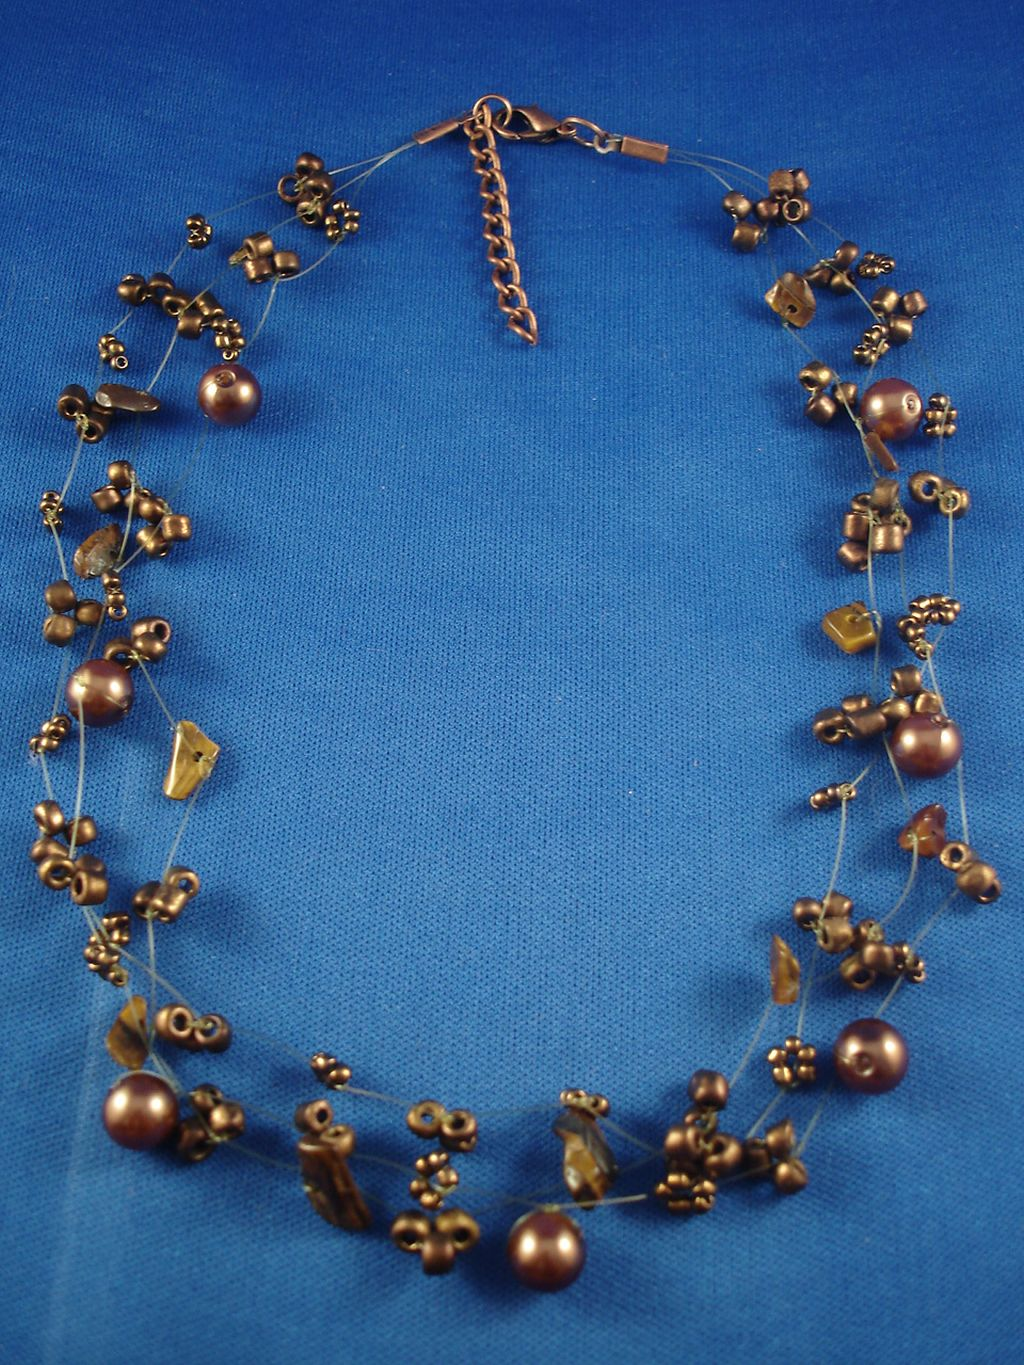 Necklace, Three Layers of Brown Beads, Artificial Pearls & Genuine Stones, Fashion European Jewelry